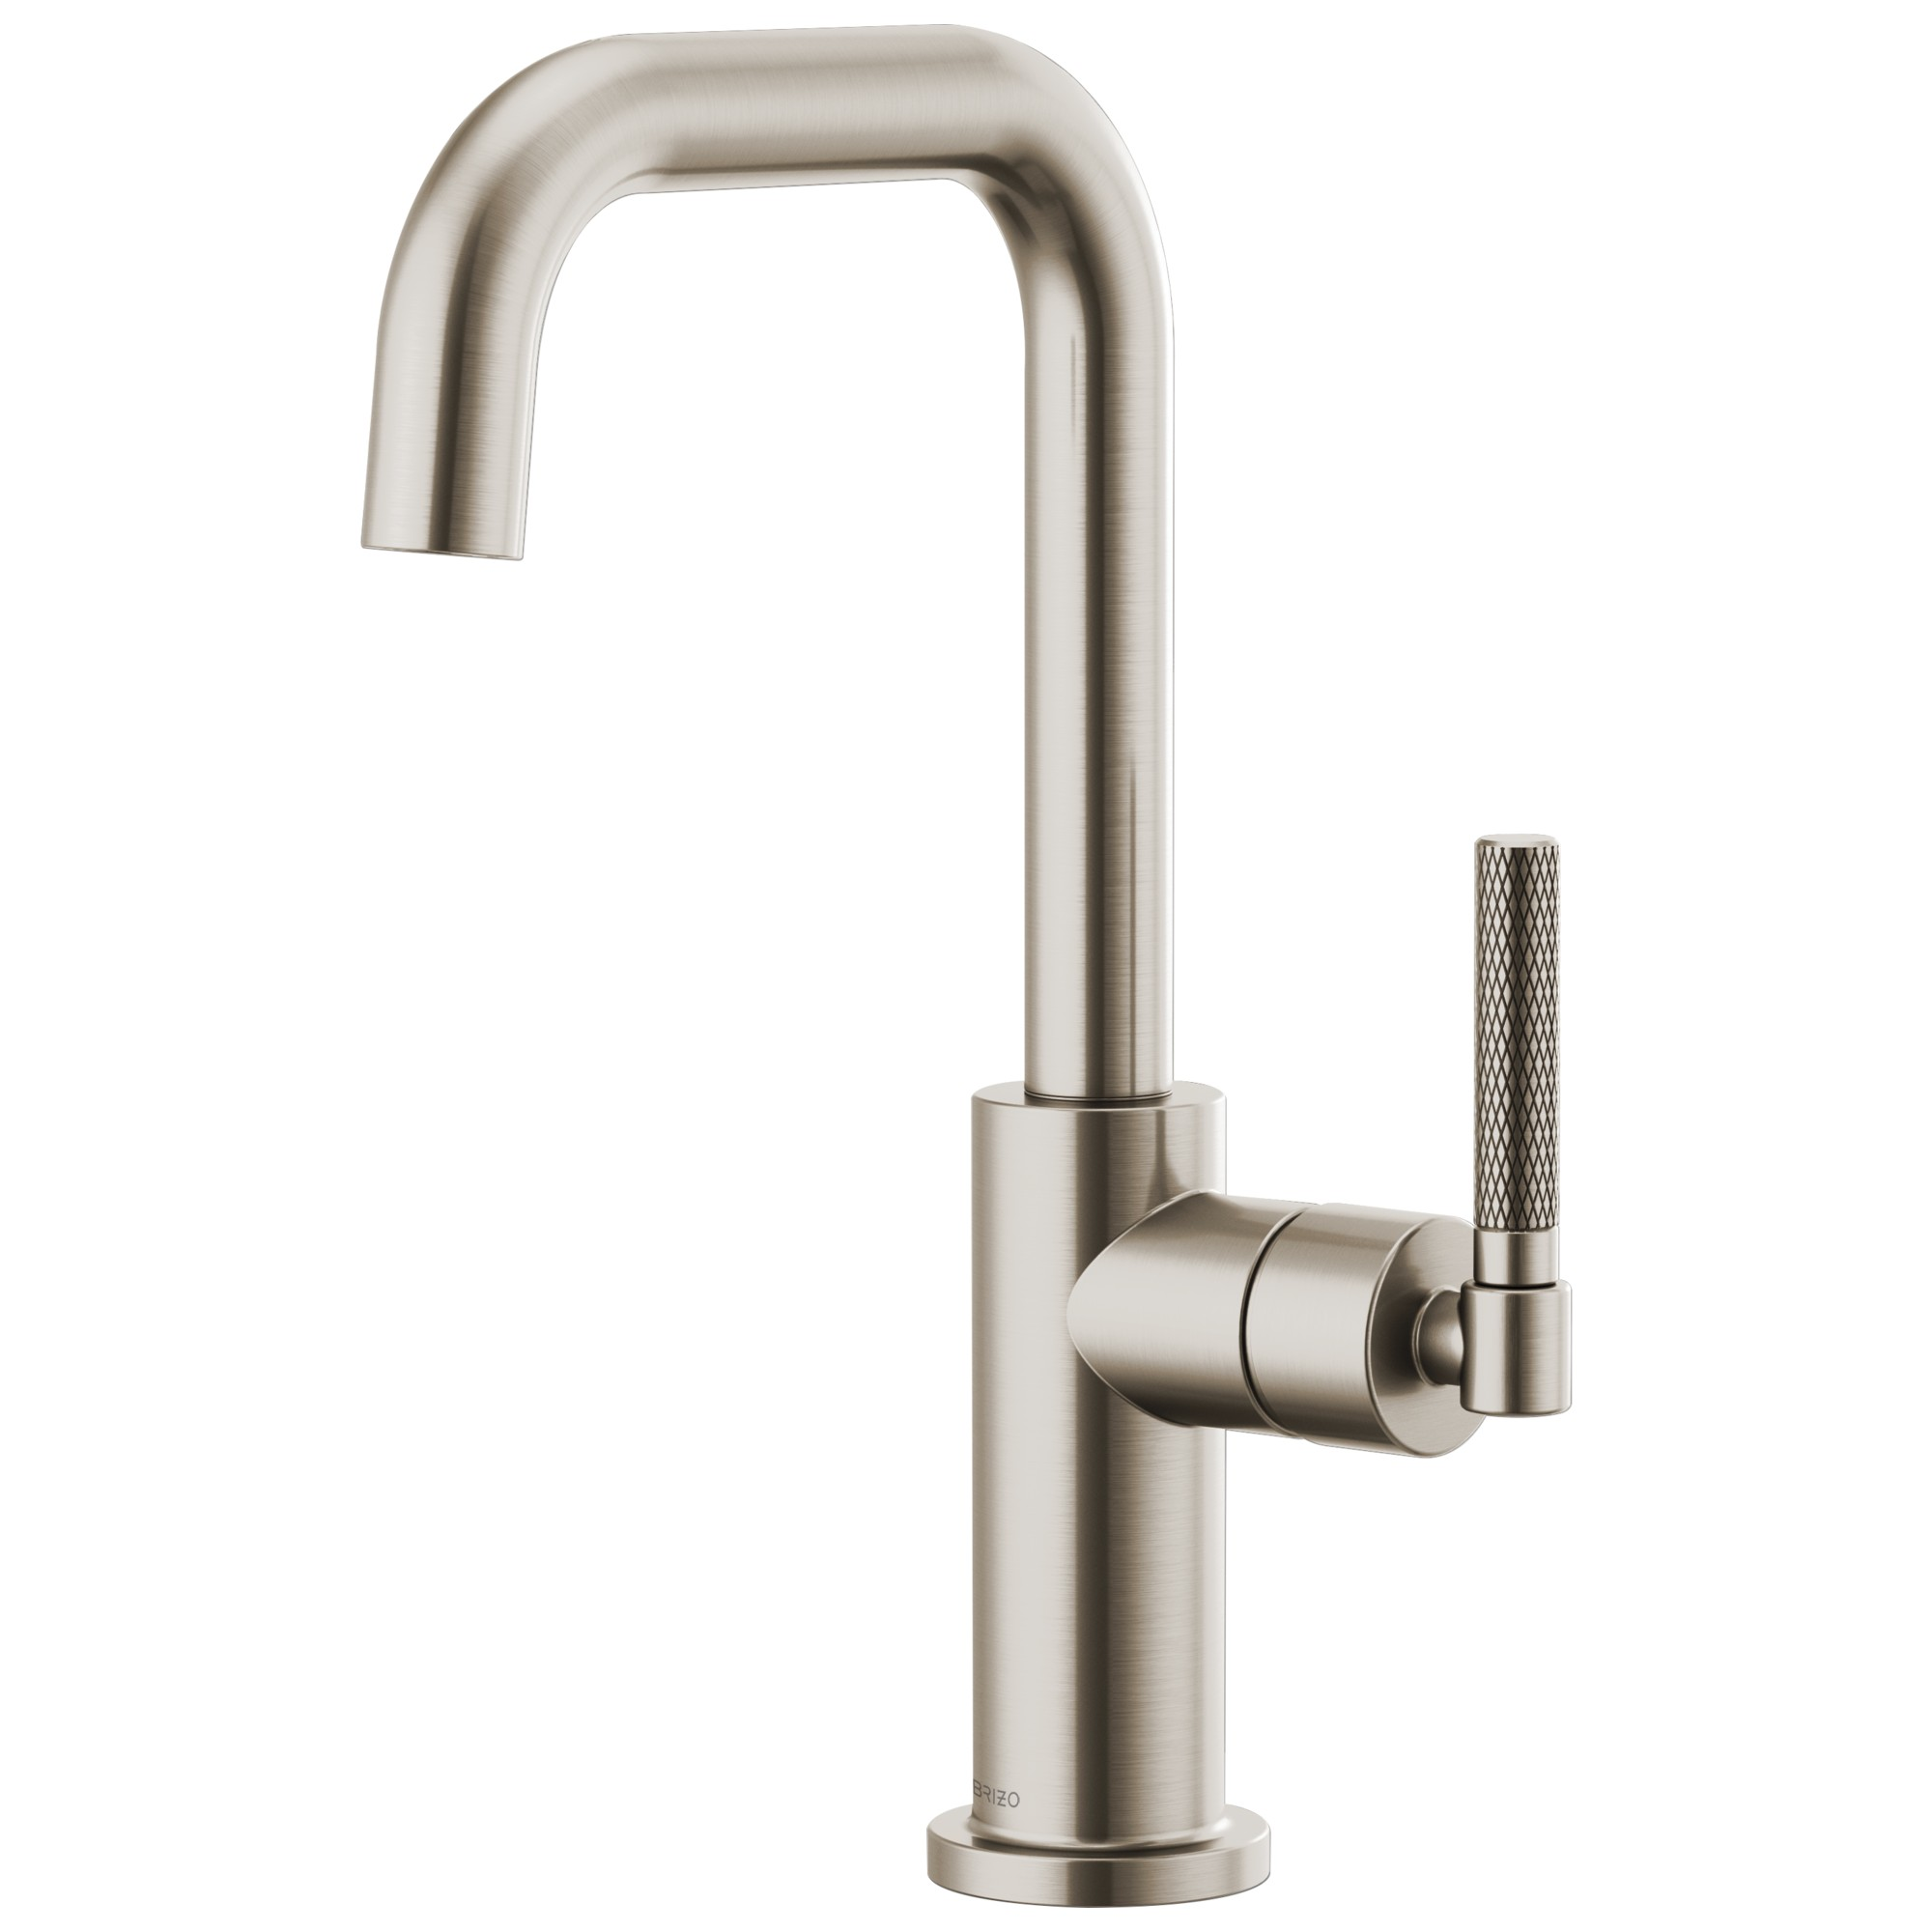 Brizo 61053LF-SS Litze Bar Faucet with Square Spout and Knurled Handle - Stainless